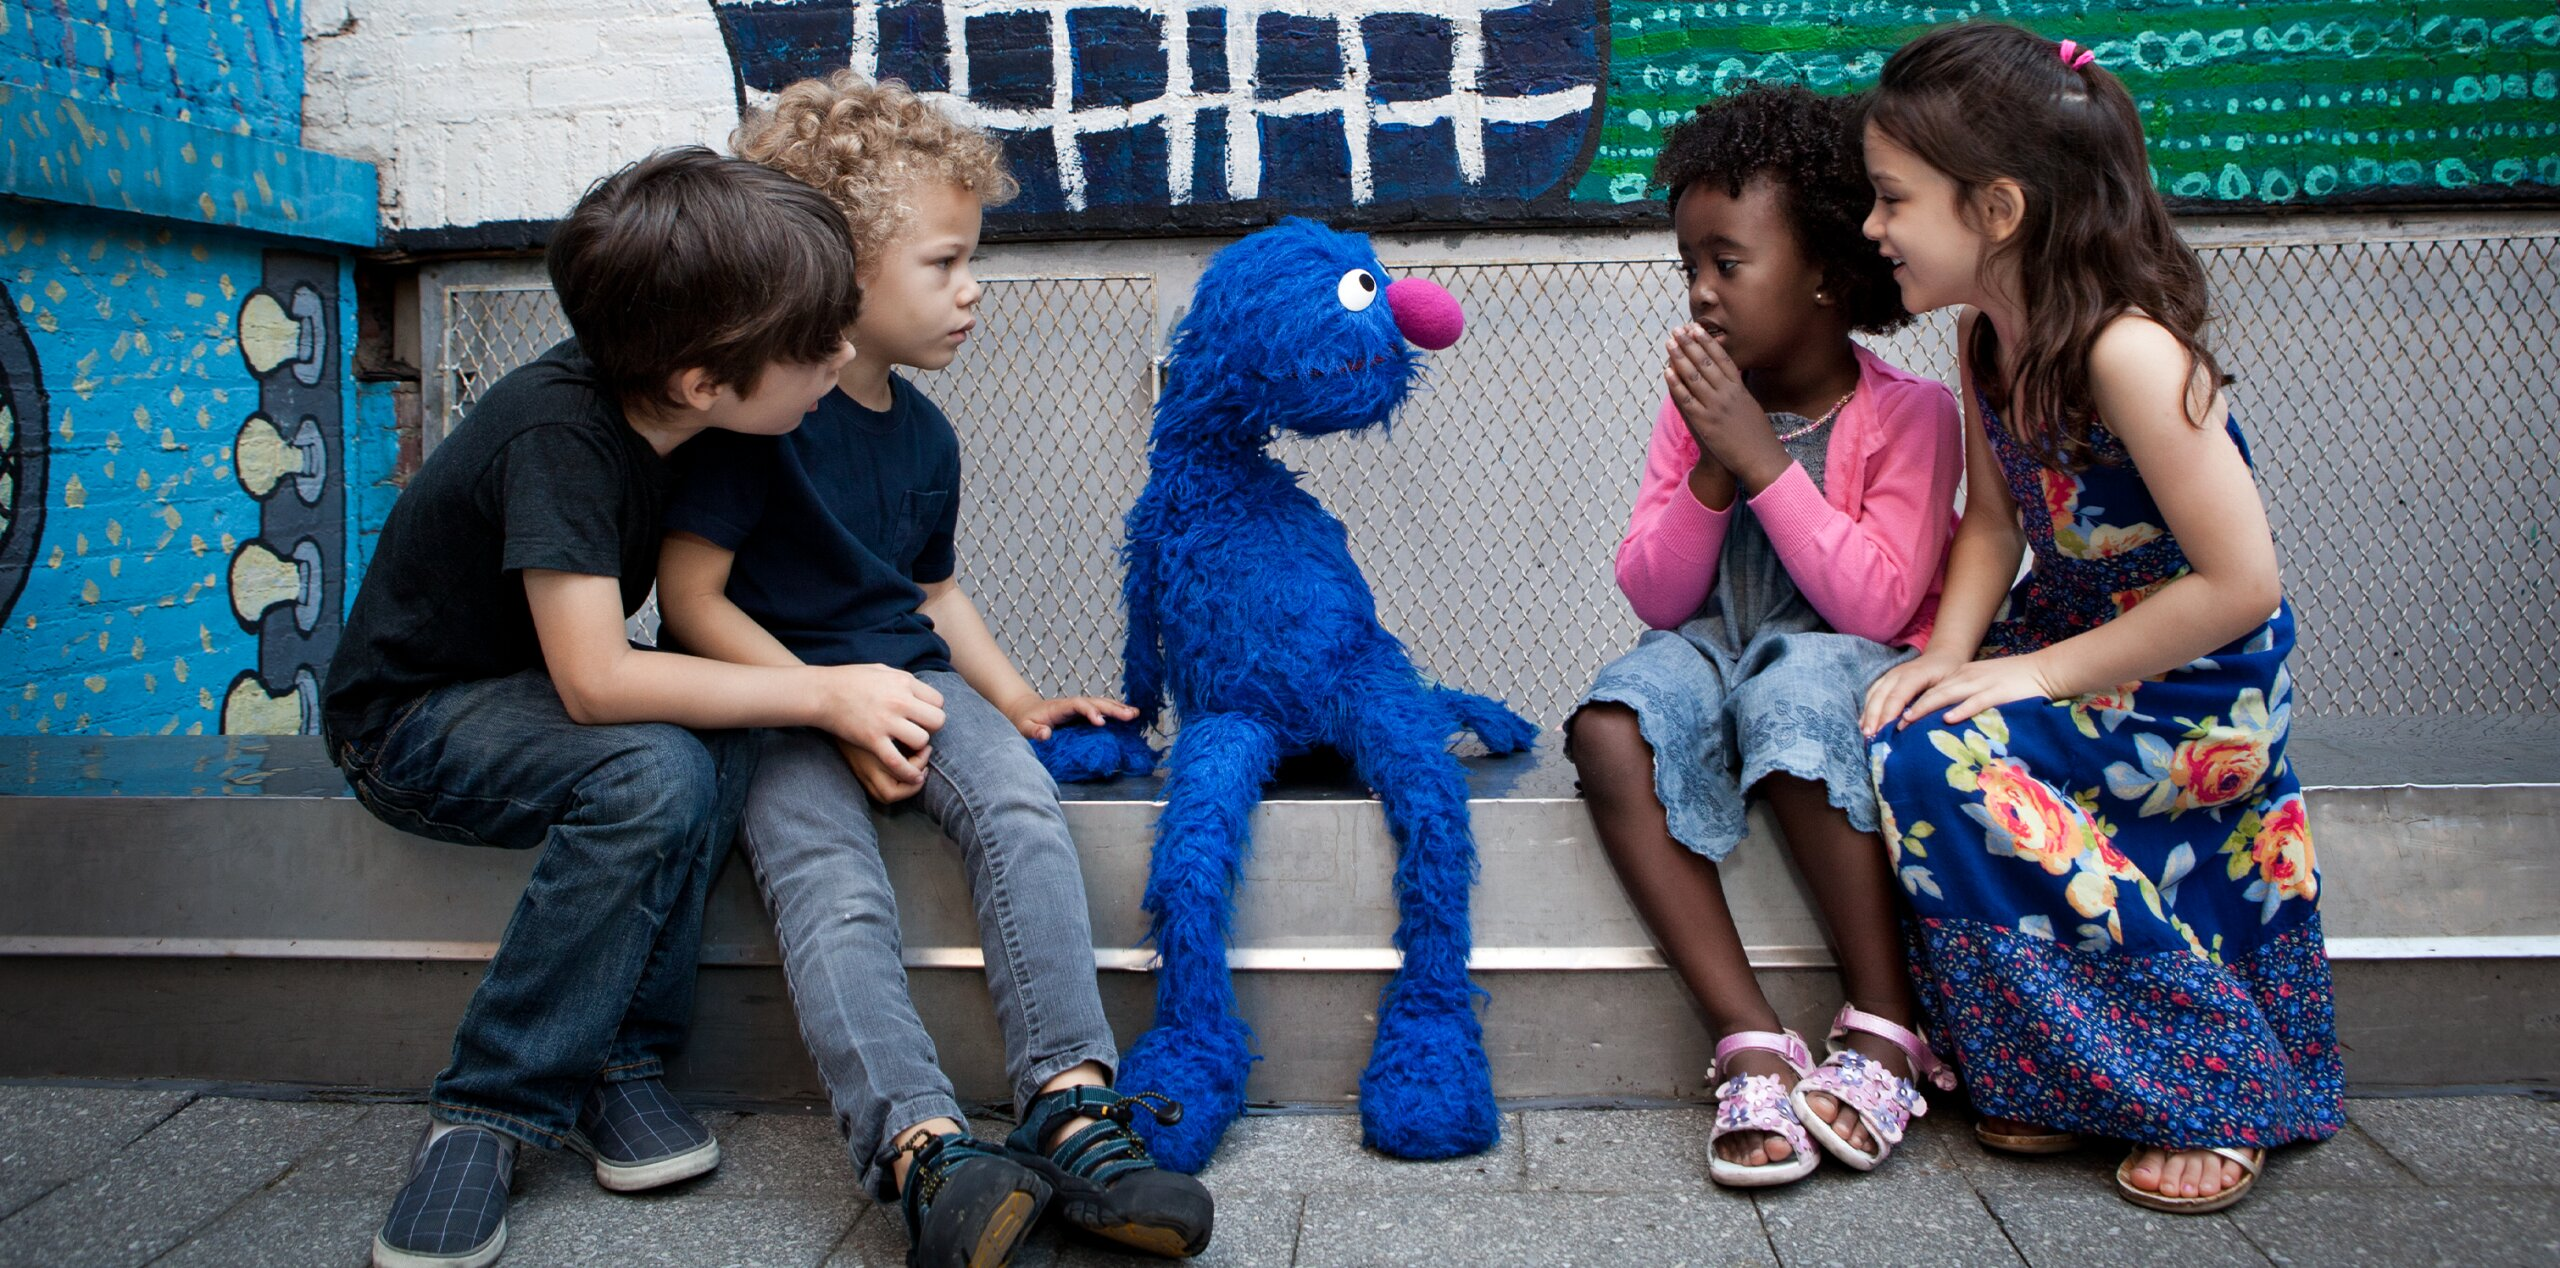 Grover sits on a step with a group of four children looking at him